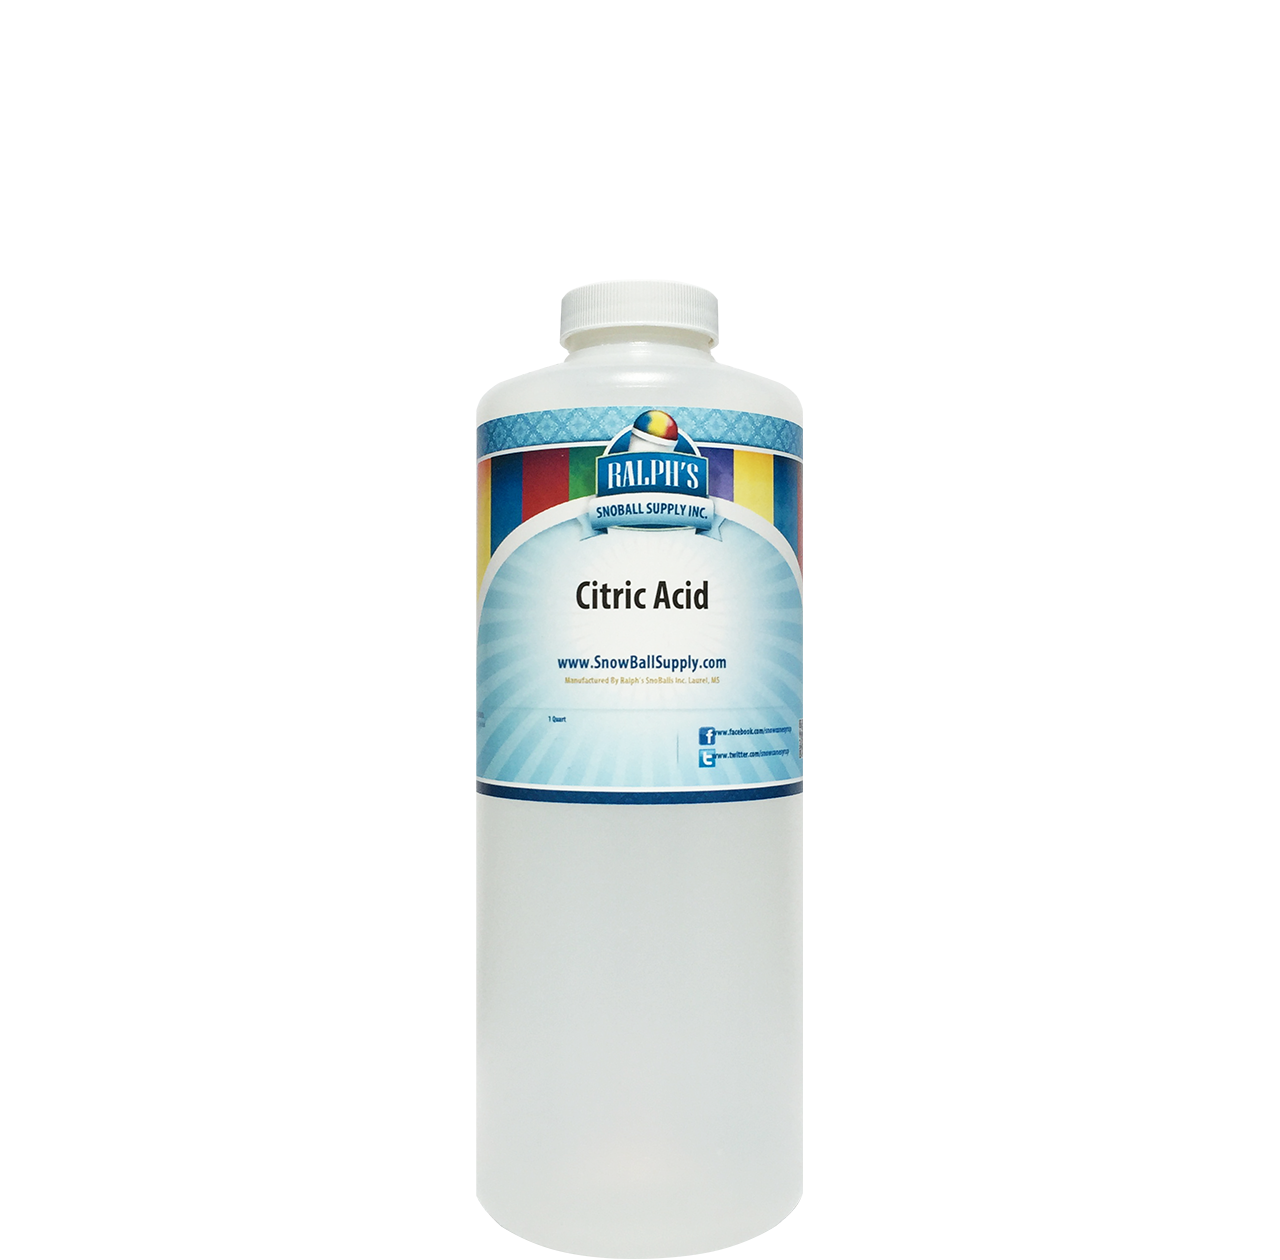 Quart of Citric Acid